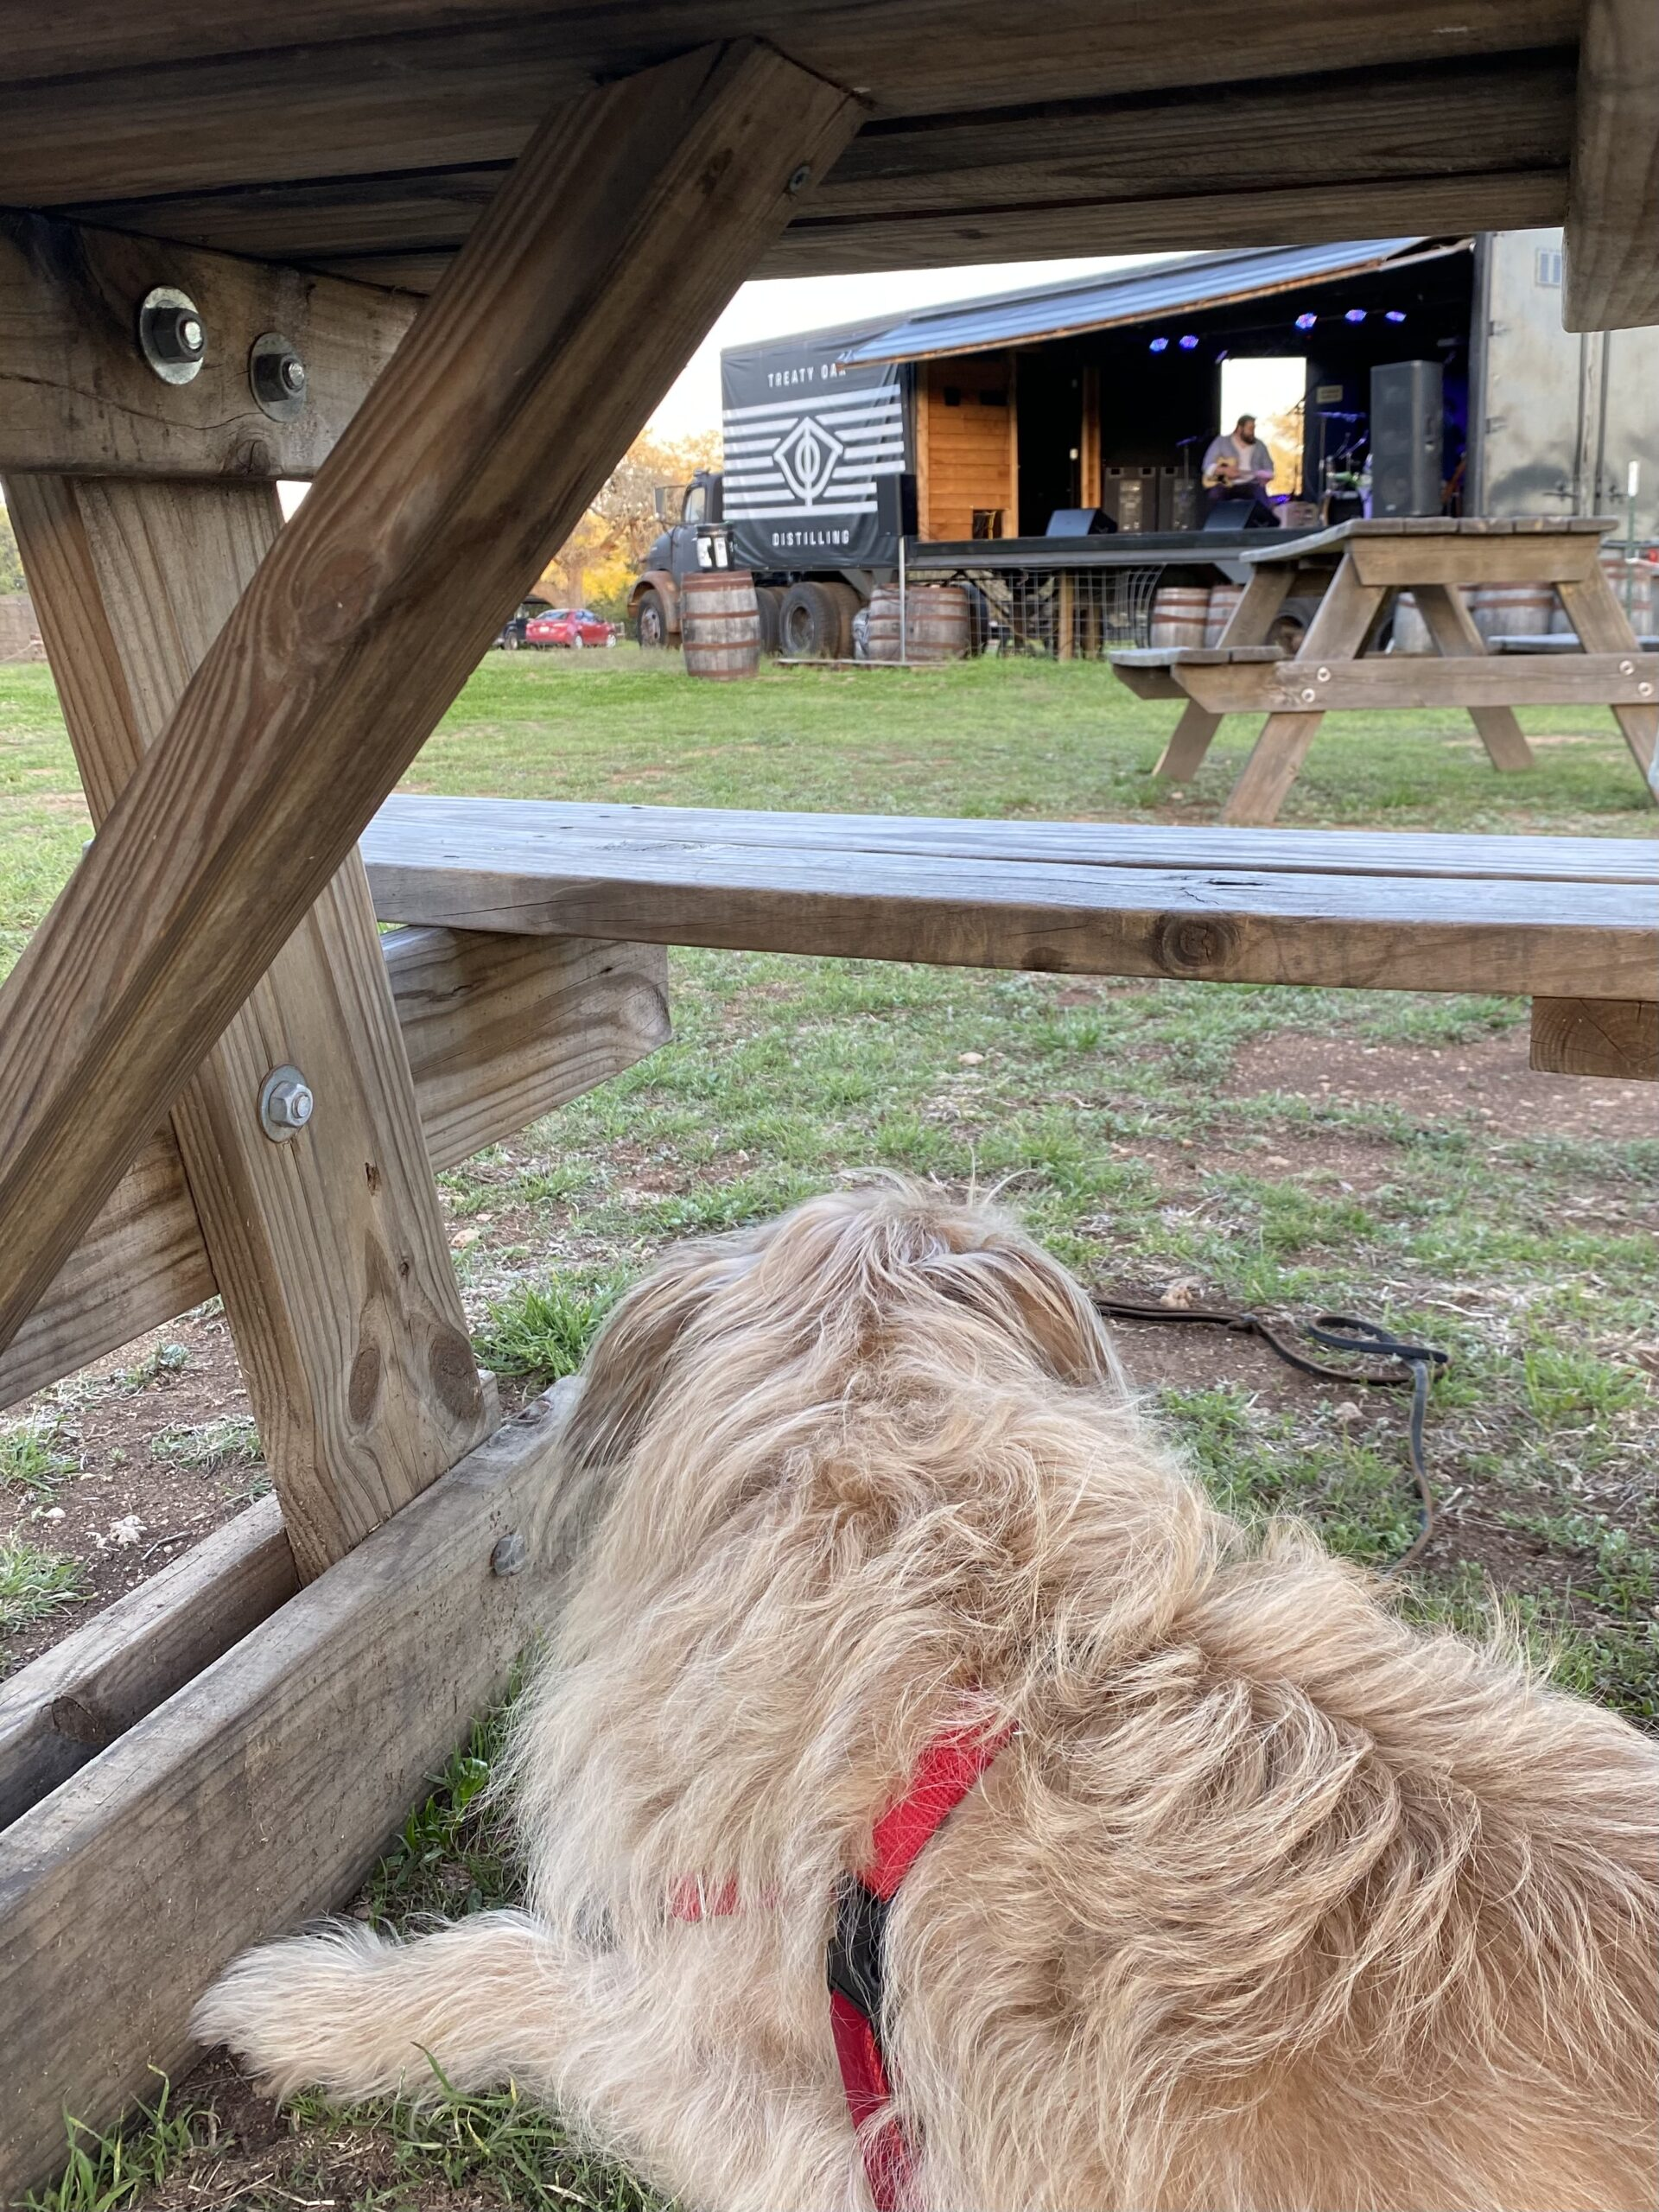 Dog under a picnic table